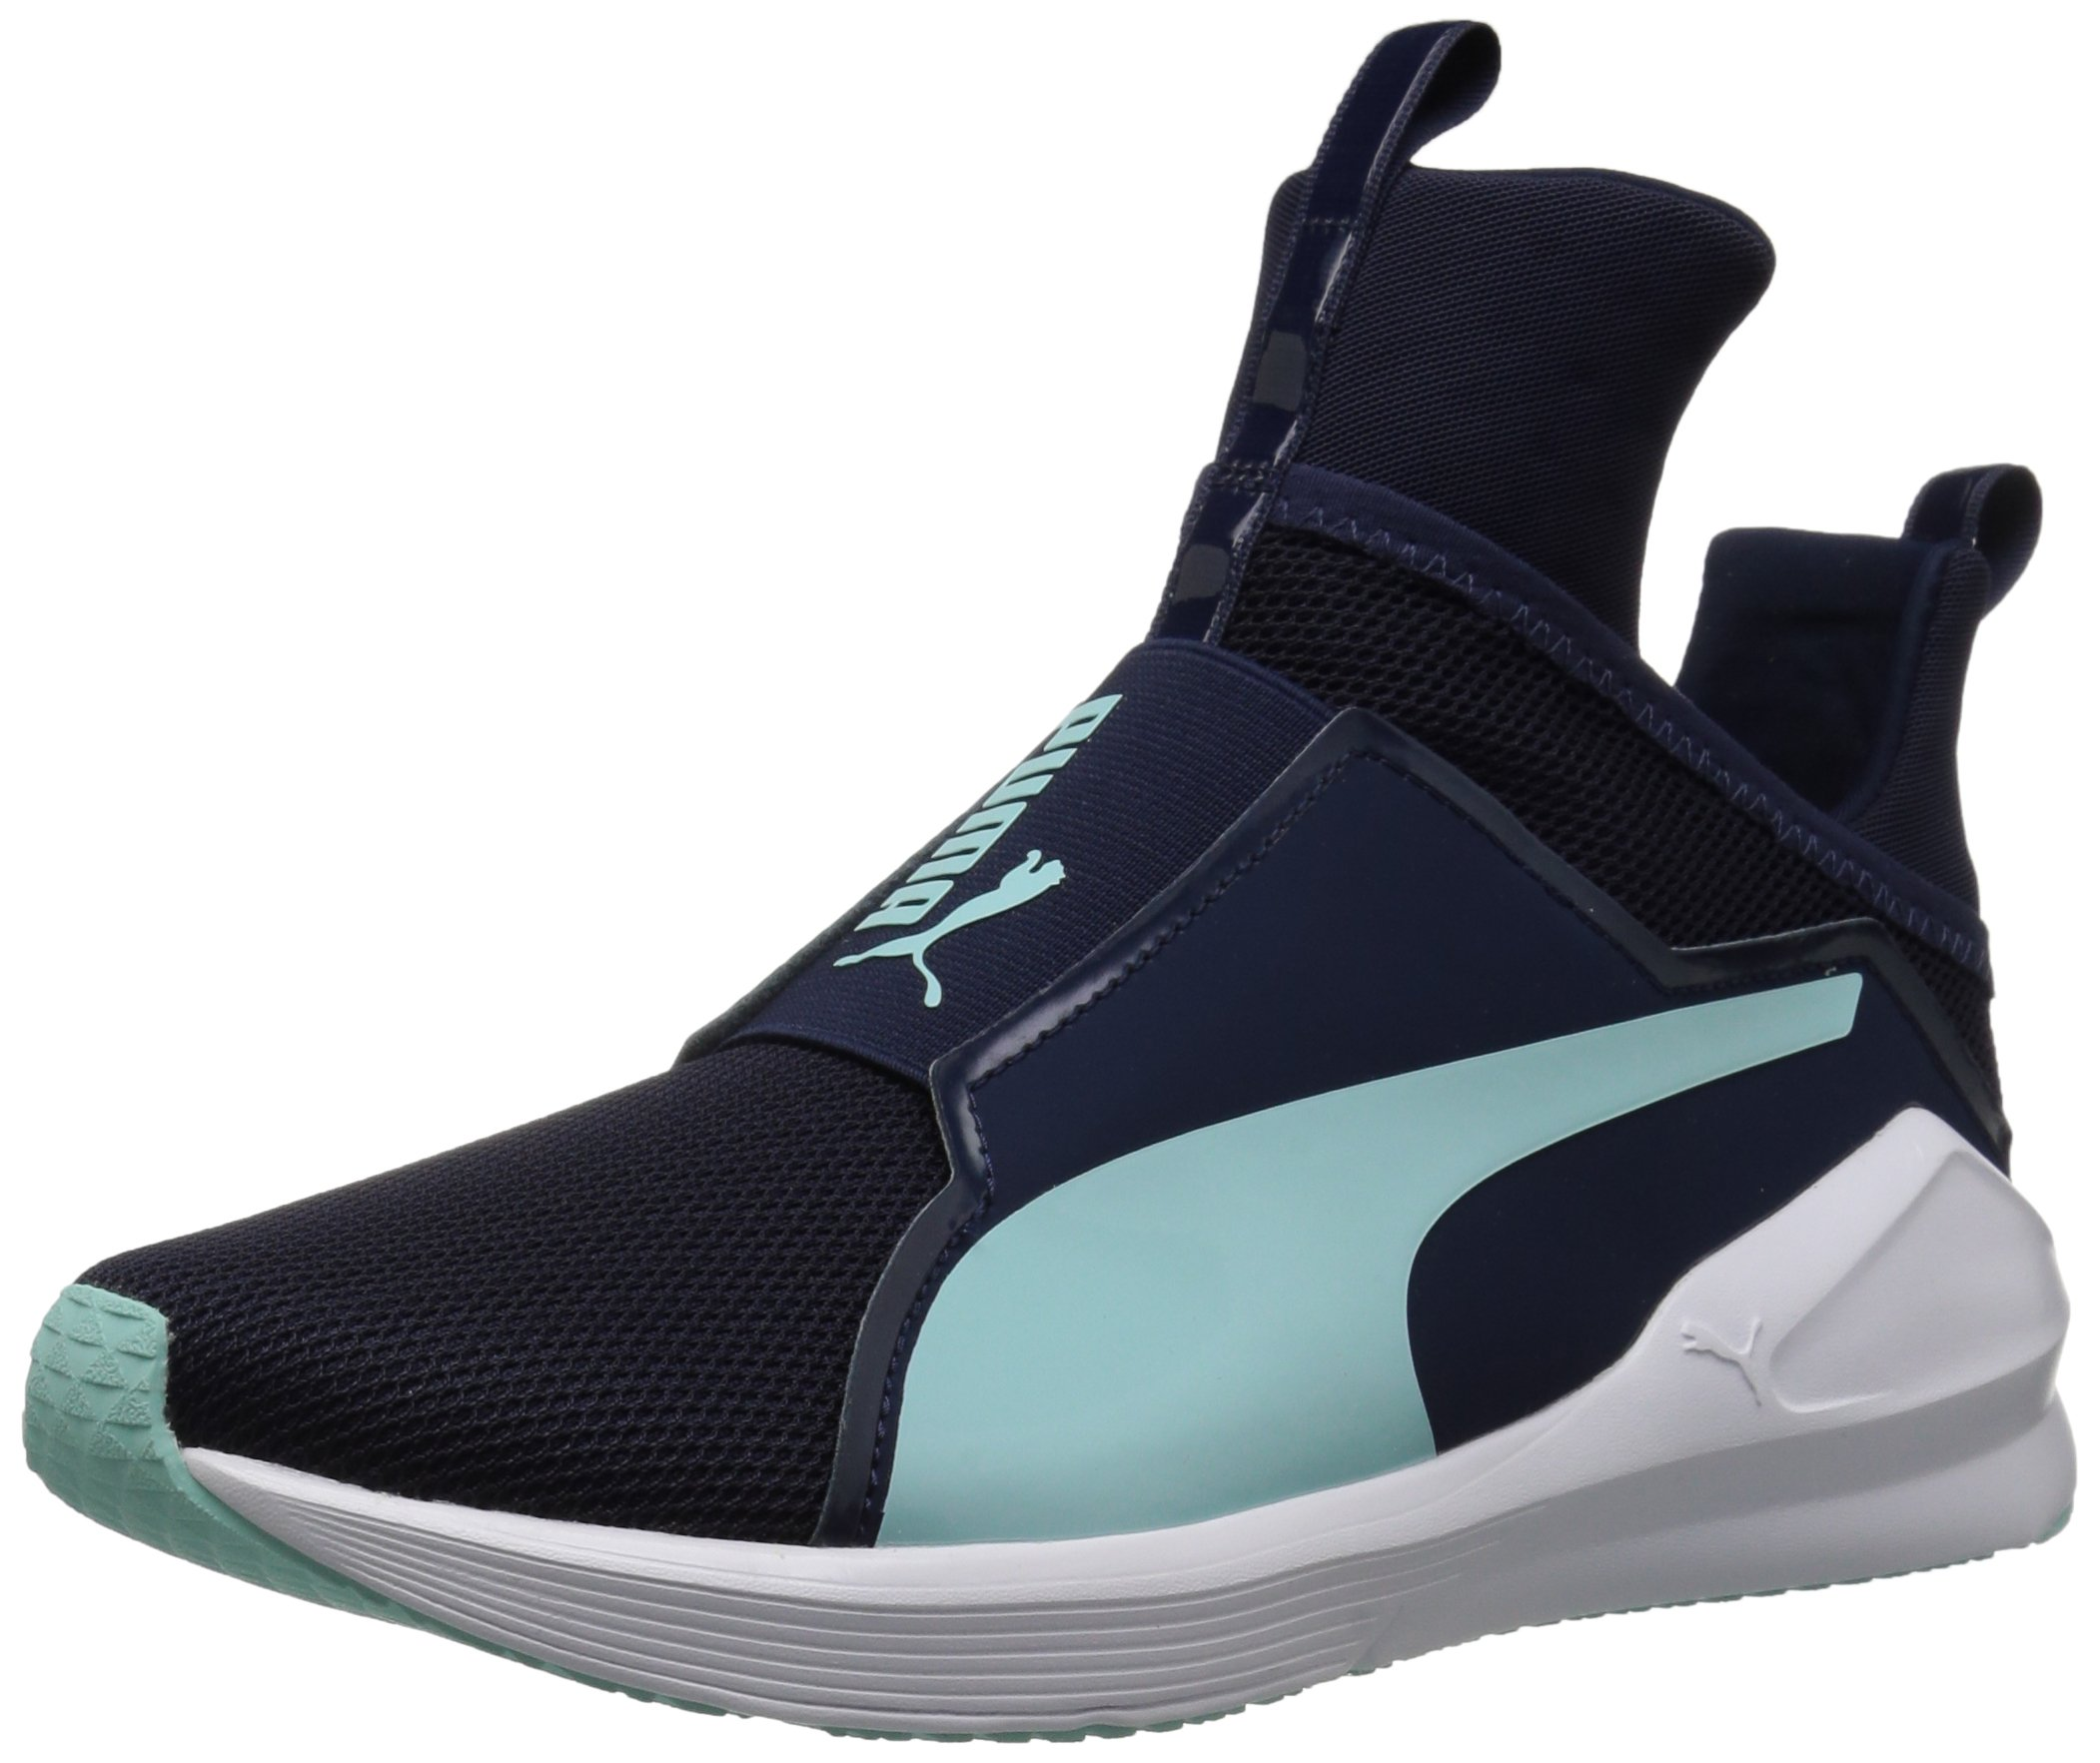 PUMA Women's Fierce Core Sneaker, Peacoat-Island Paradise, 9 M US by PUMA (Image #1)